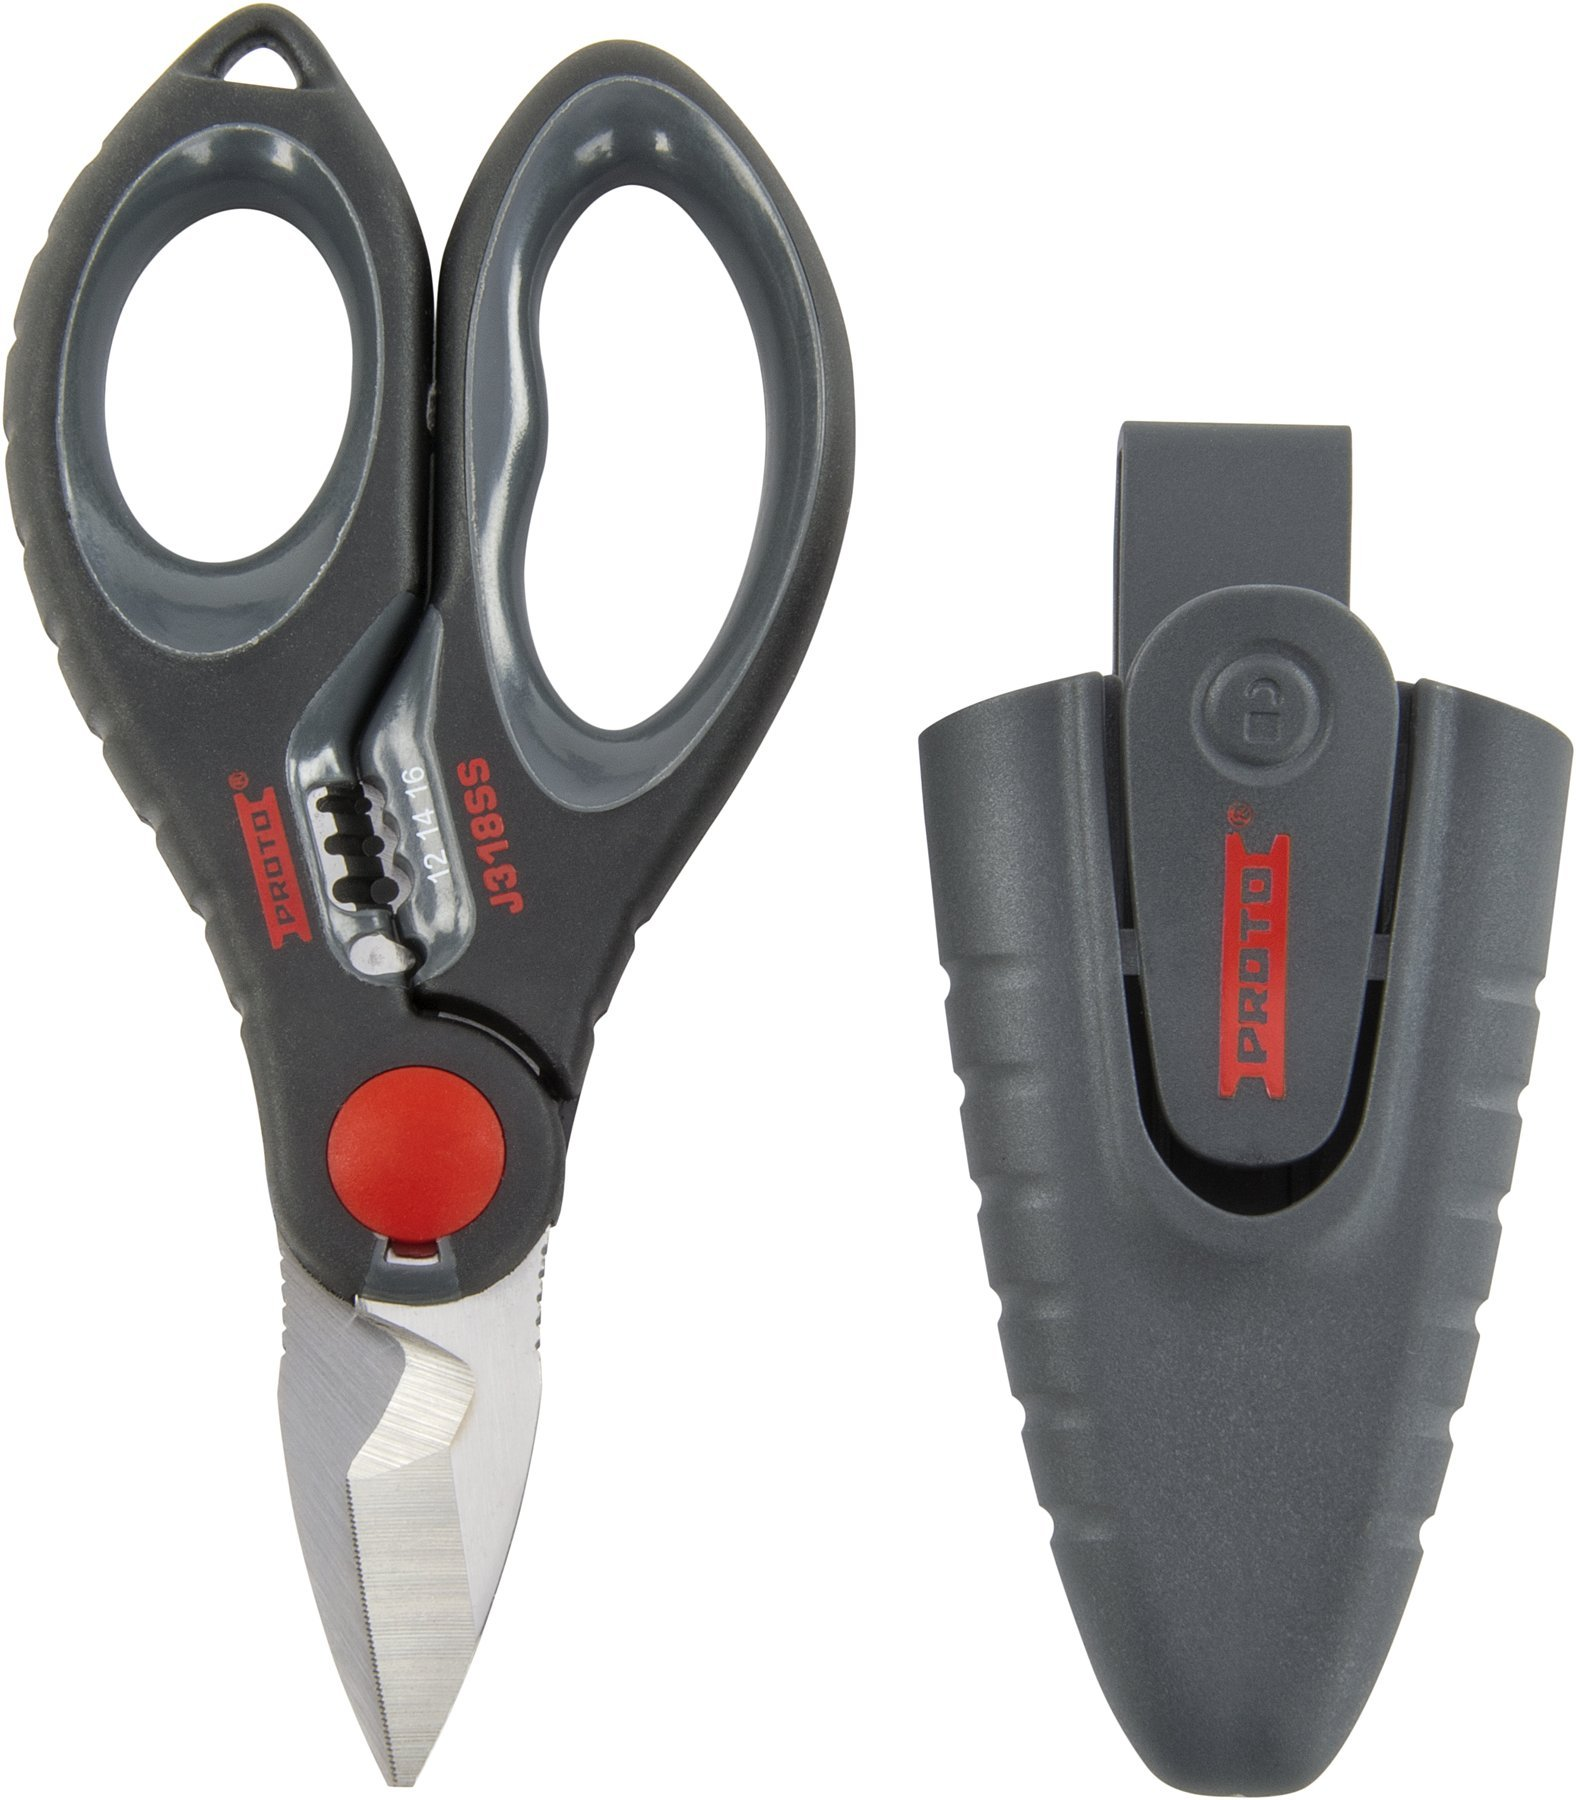 Stanley Proto J318SS Stainless Steel Electricians Scissors, 6-7/64-Inch